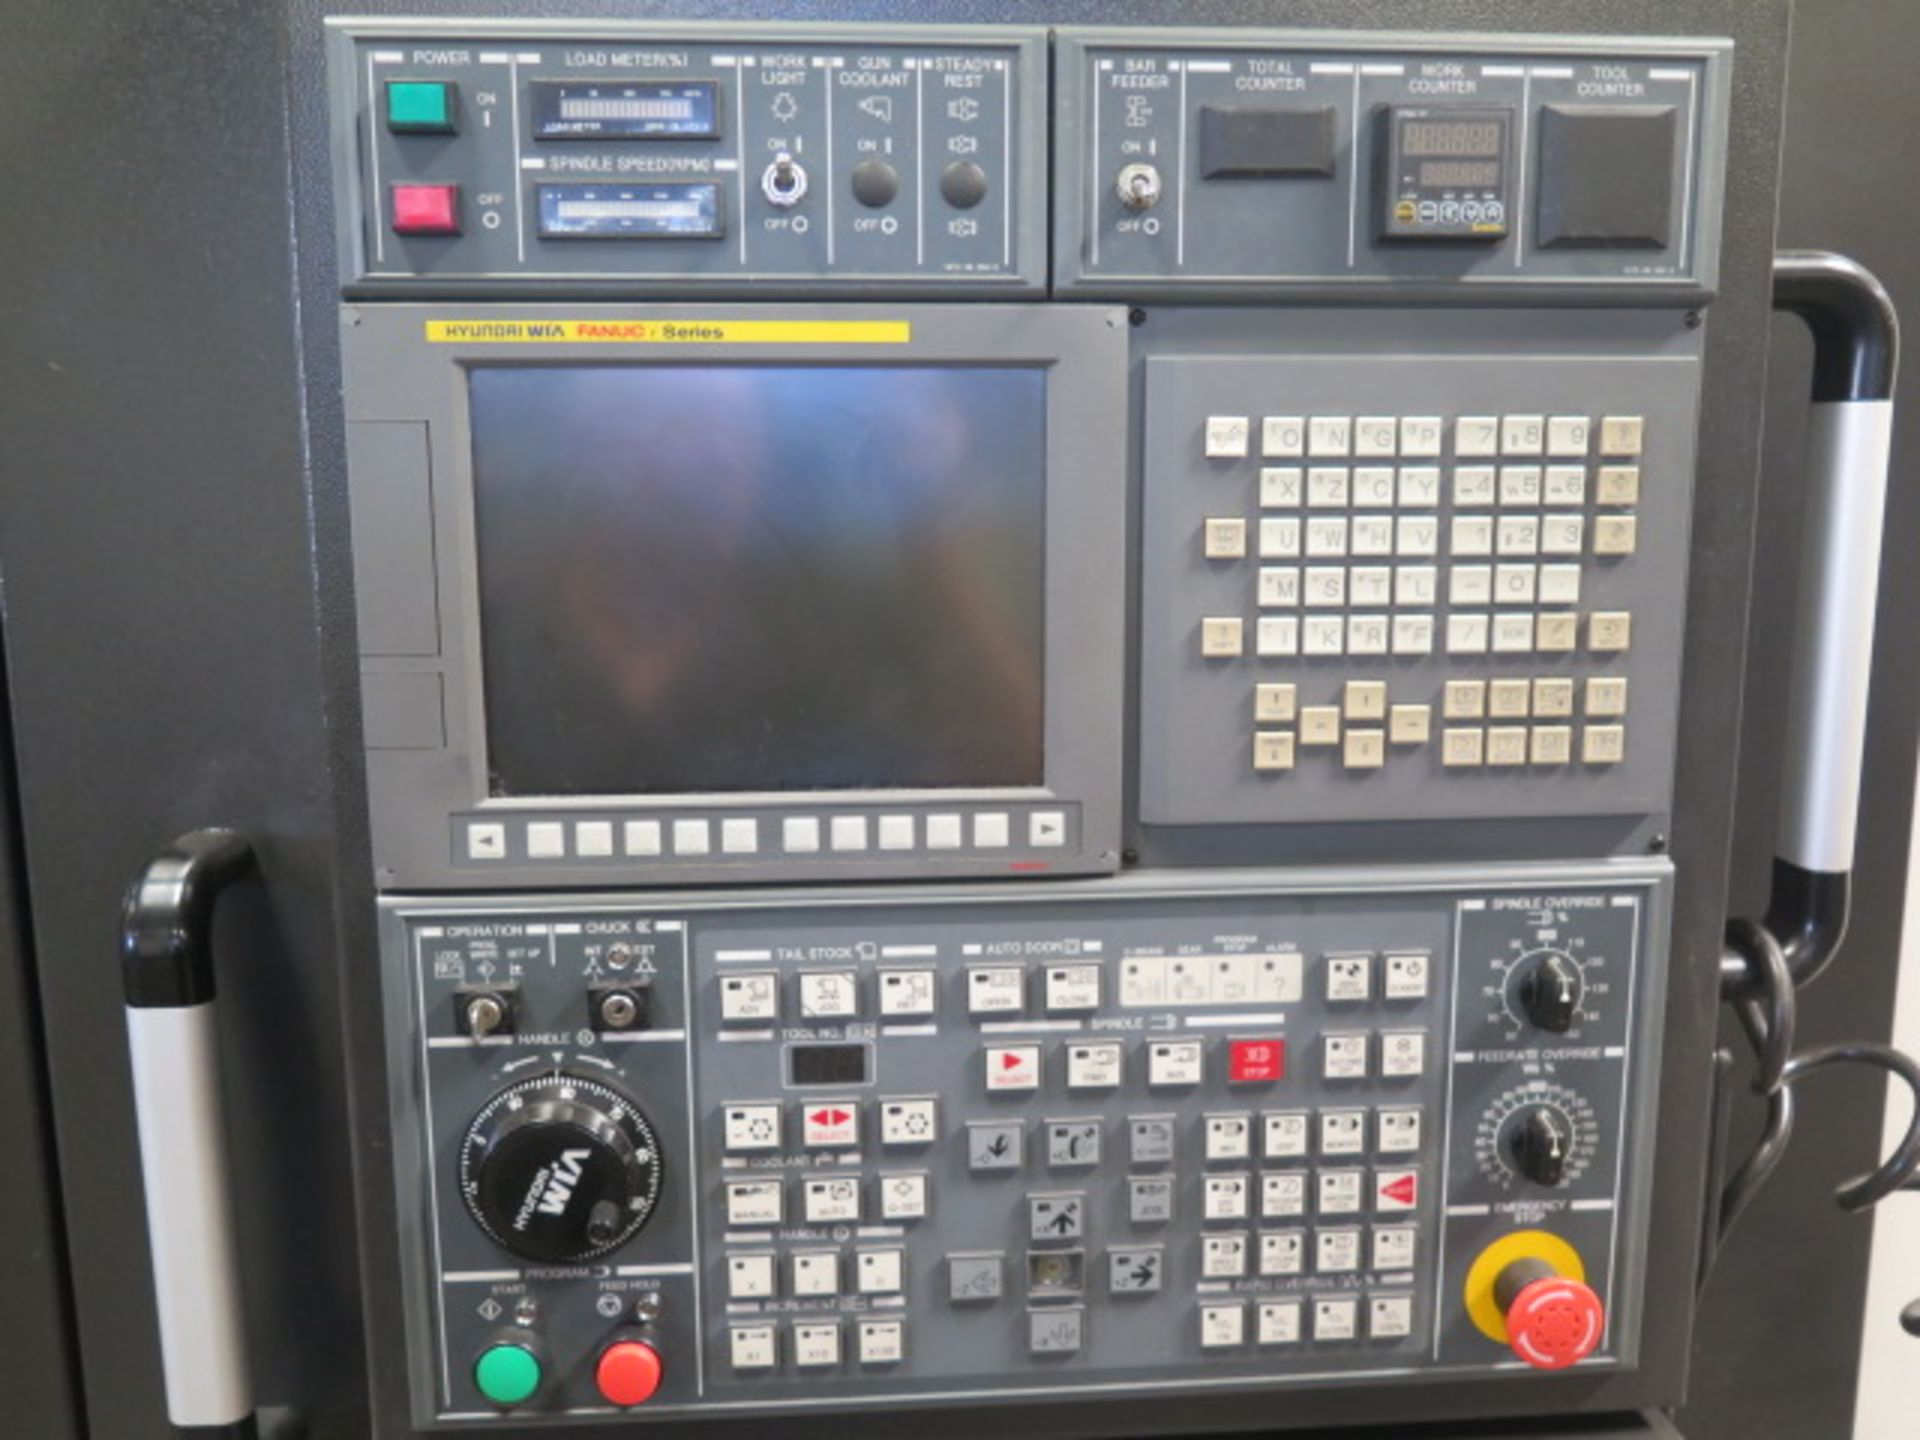 2016 Hyundai WIA L300LA CNC Turning Center s/n G3726-0083 w/ Fanuc i-Series Controls, SOLD AS IS - Image 5 of 20